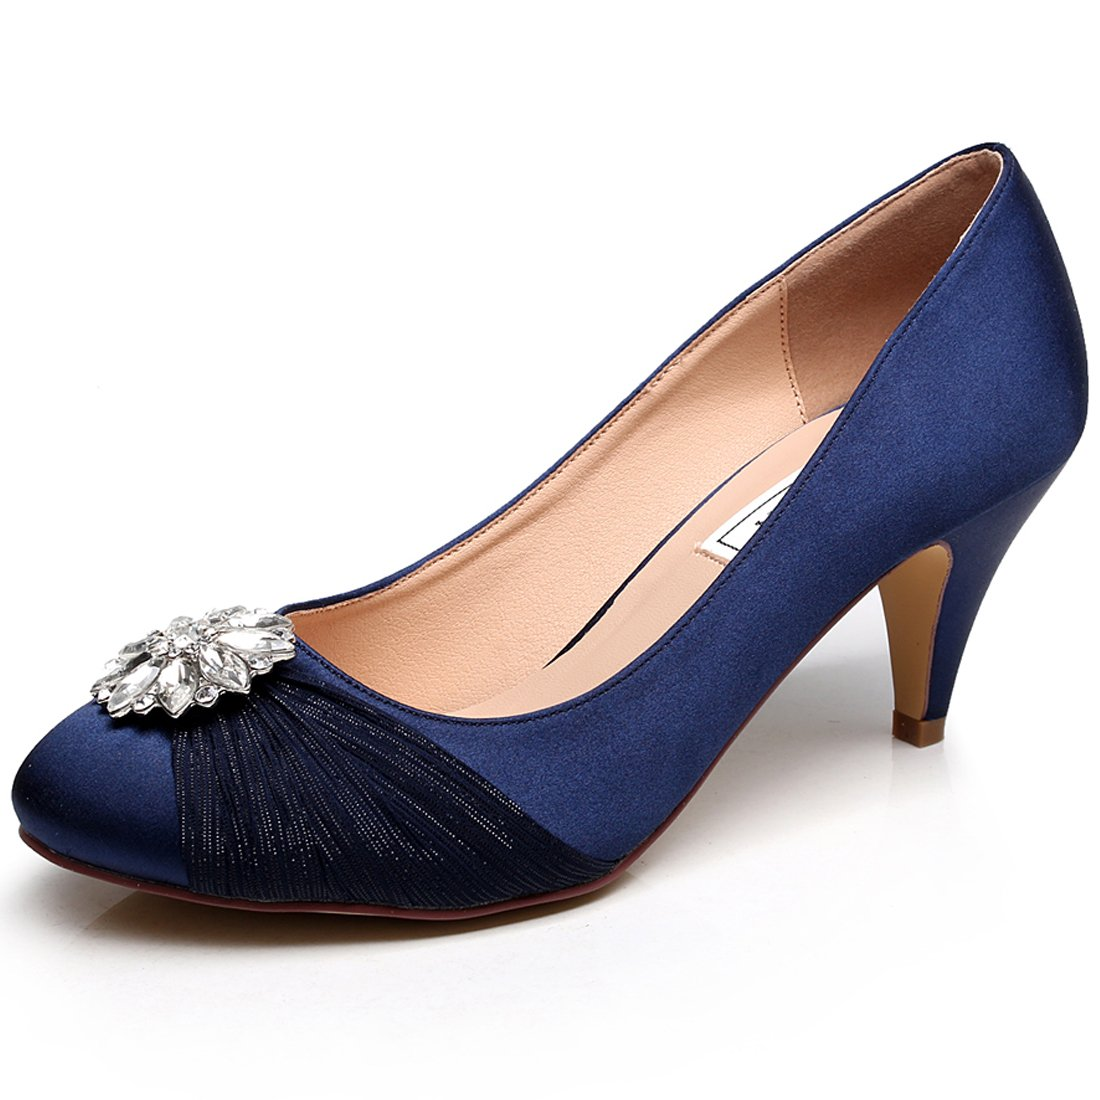 LUXVEER Satin Women Shoes Wedding Shoes with Rhinestone Bridal Shoes Low Heel Closed Toe Lace Wedding Shoes - Heels 2 inch-RS-9810-Dark Blue-EU38 Wedding Shoes